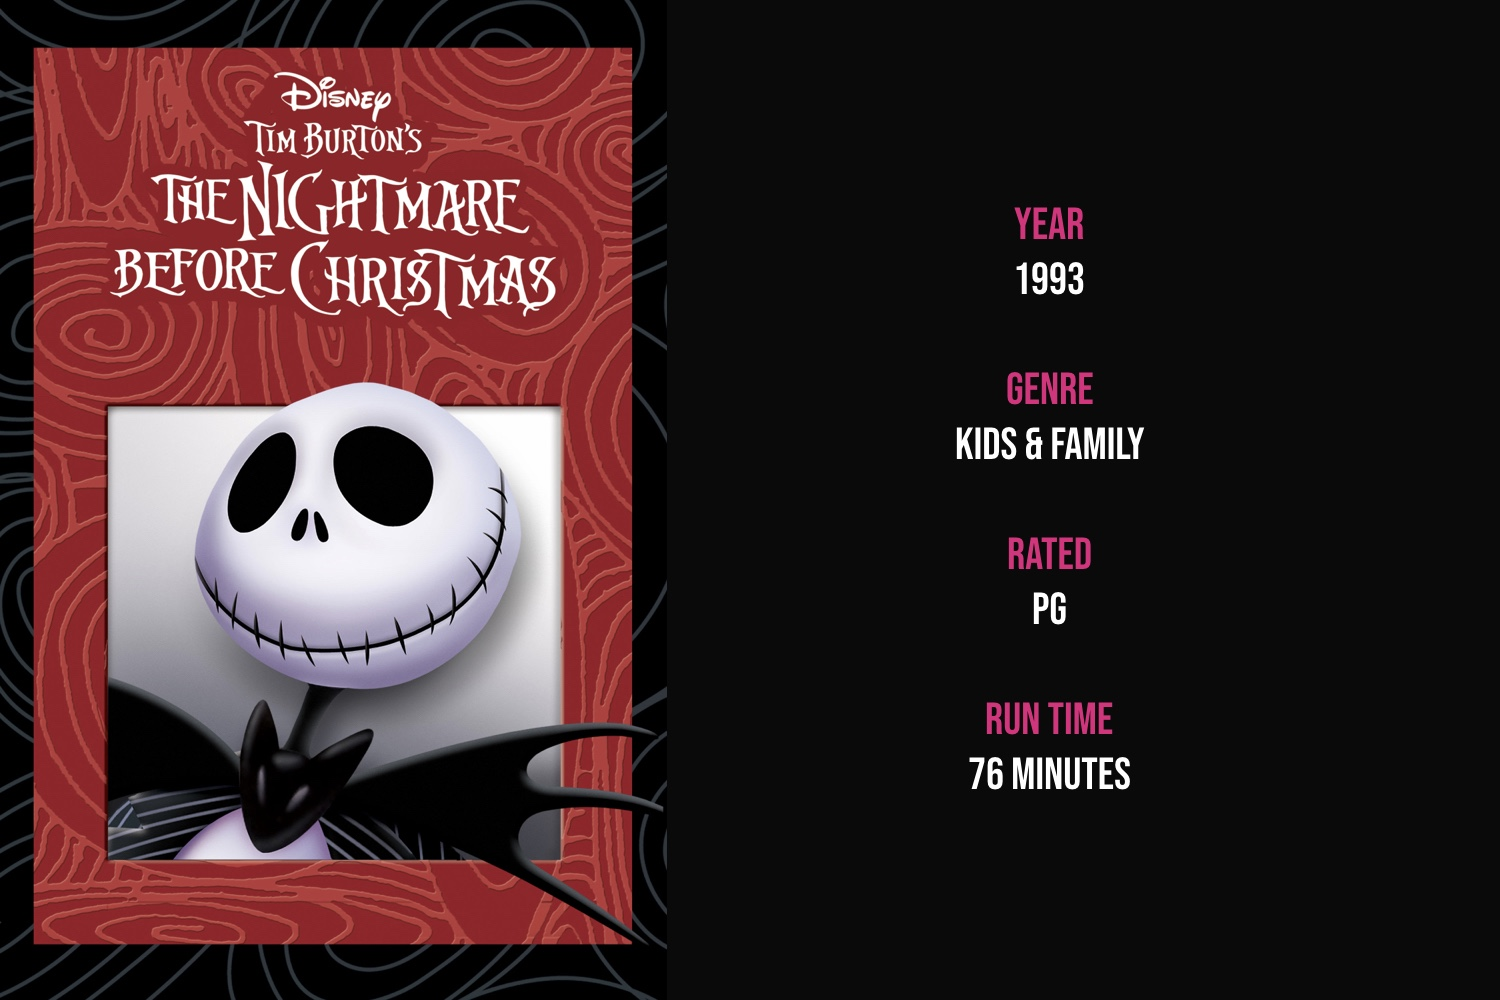 The Nightmare Before Christmas - In a land where every holiday has it's own land, Jack Skellington (the Pumpkin King of Halloween Town) is bored with the same old tricks and treats, but after discovering Christmas Town and attempting to bring that magic home, it causes confusion.iTunes | Amazon